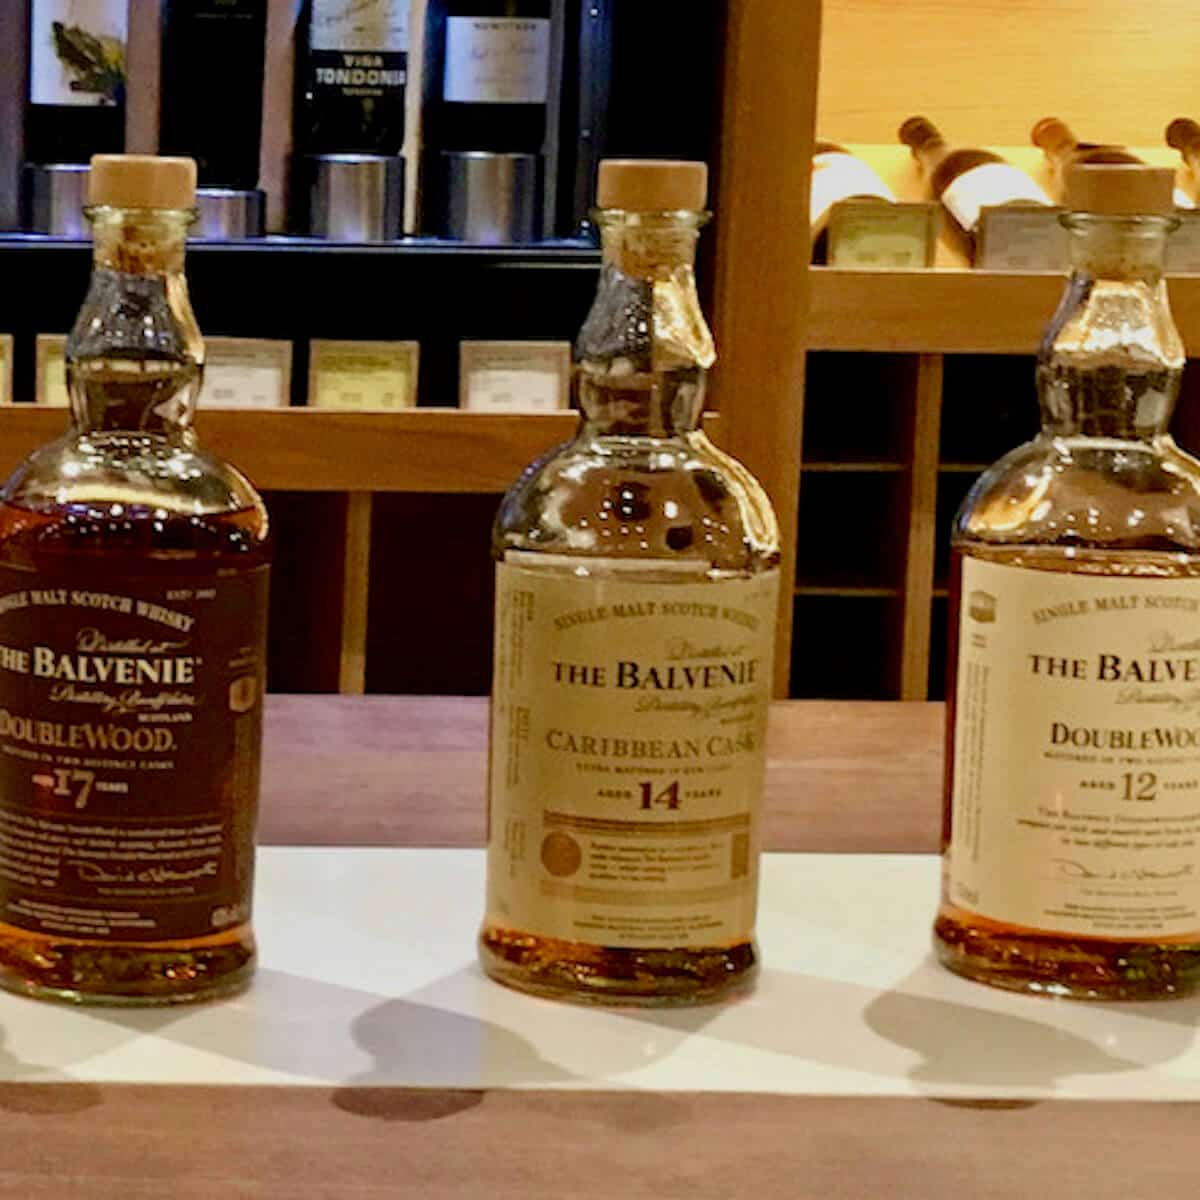 The Balvenie 12 year, 14 year, and 17 year lineup bottles on a counter.